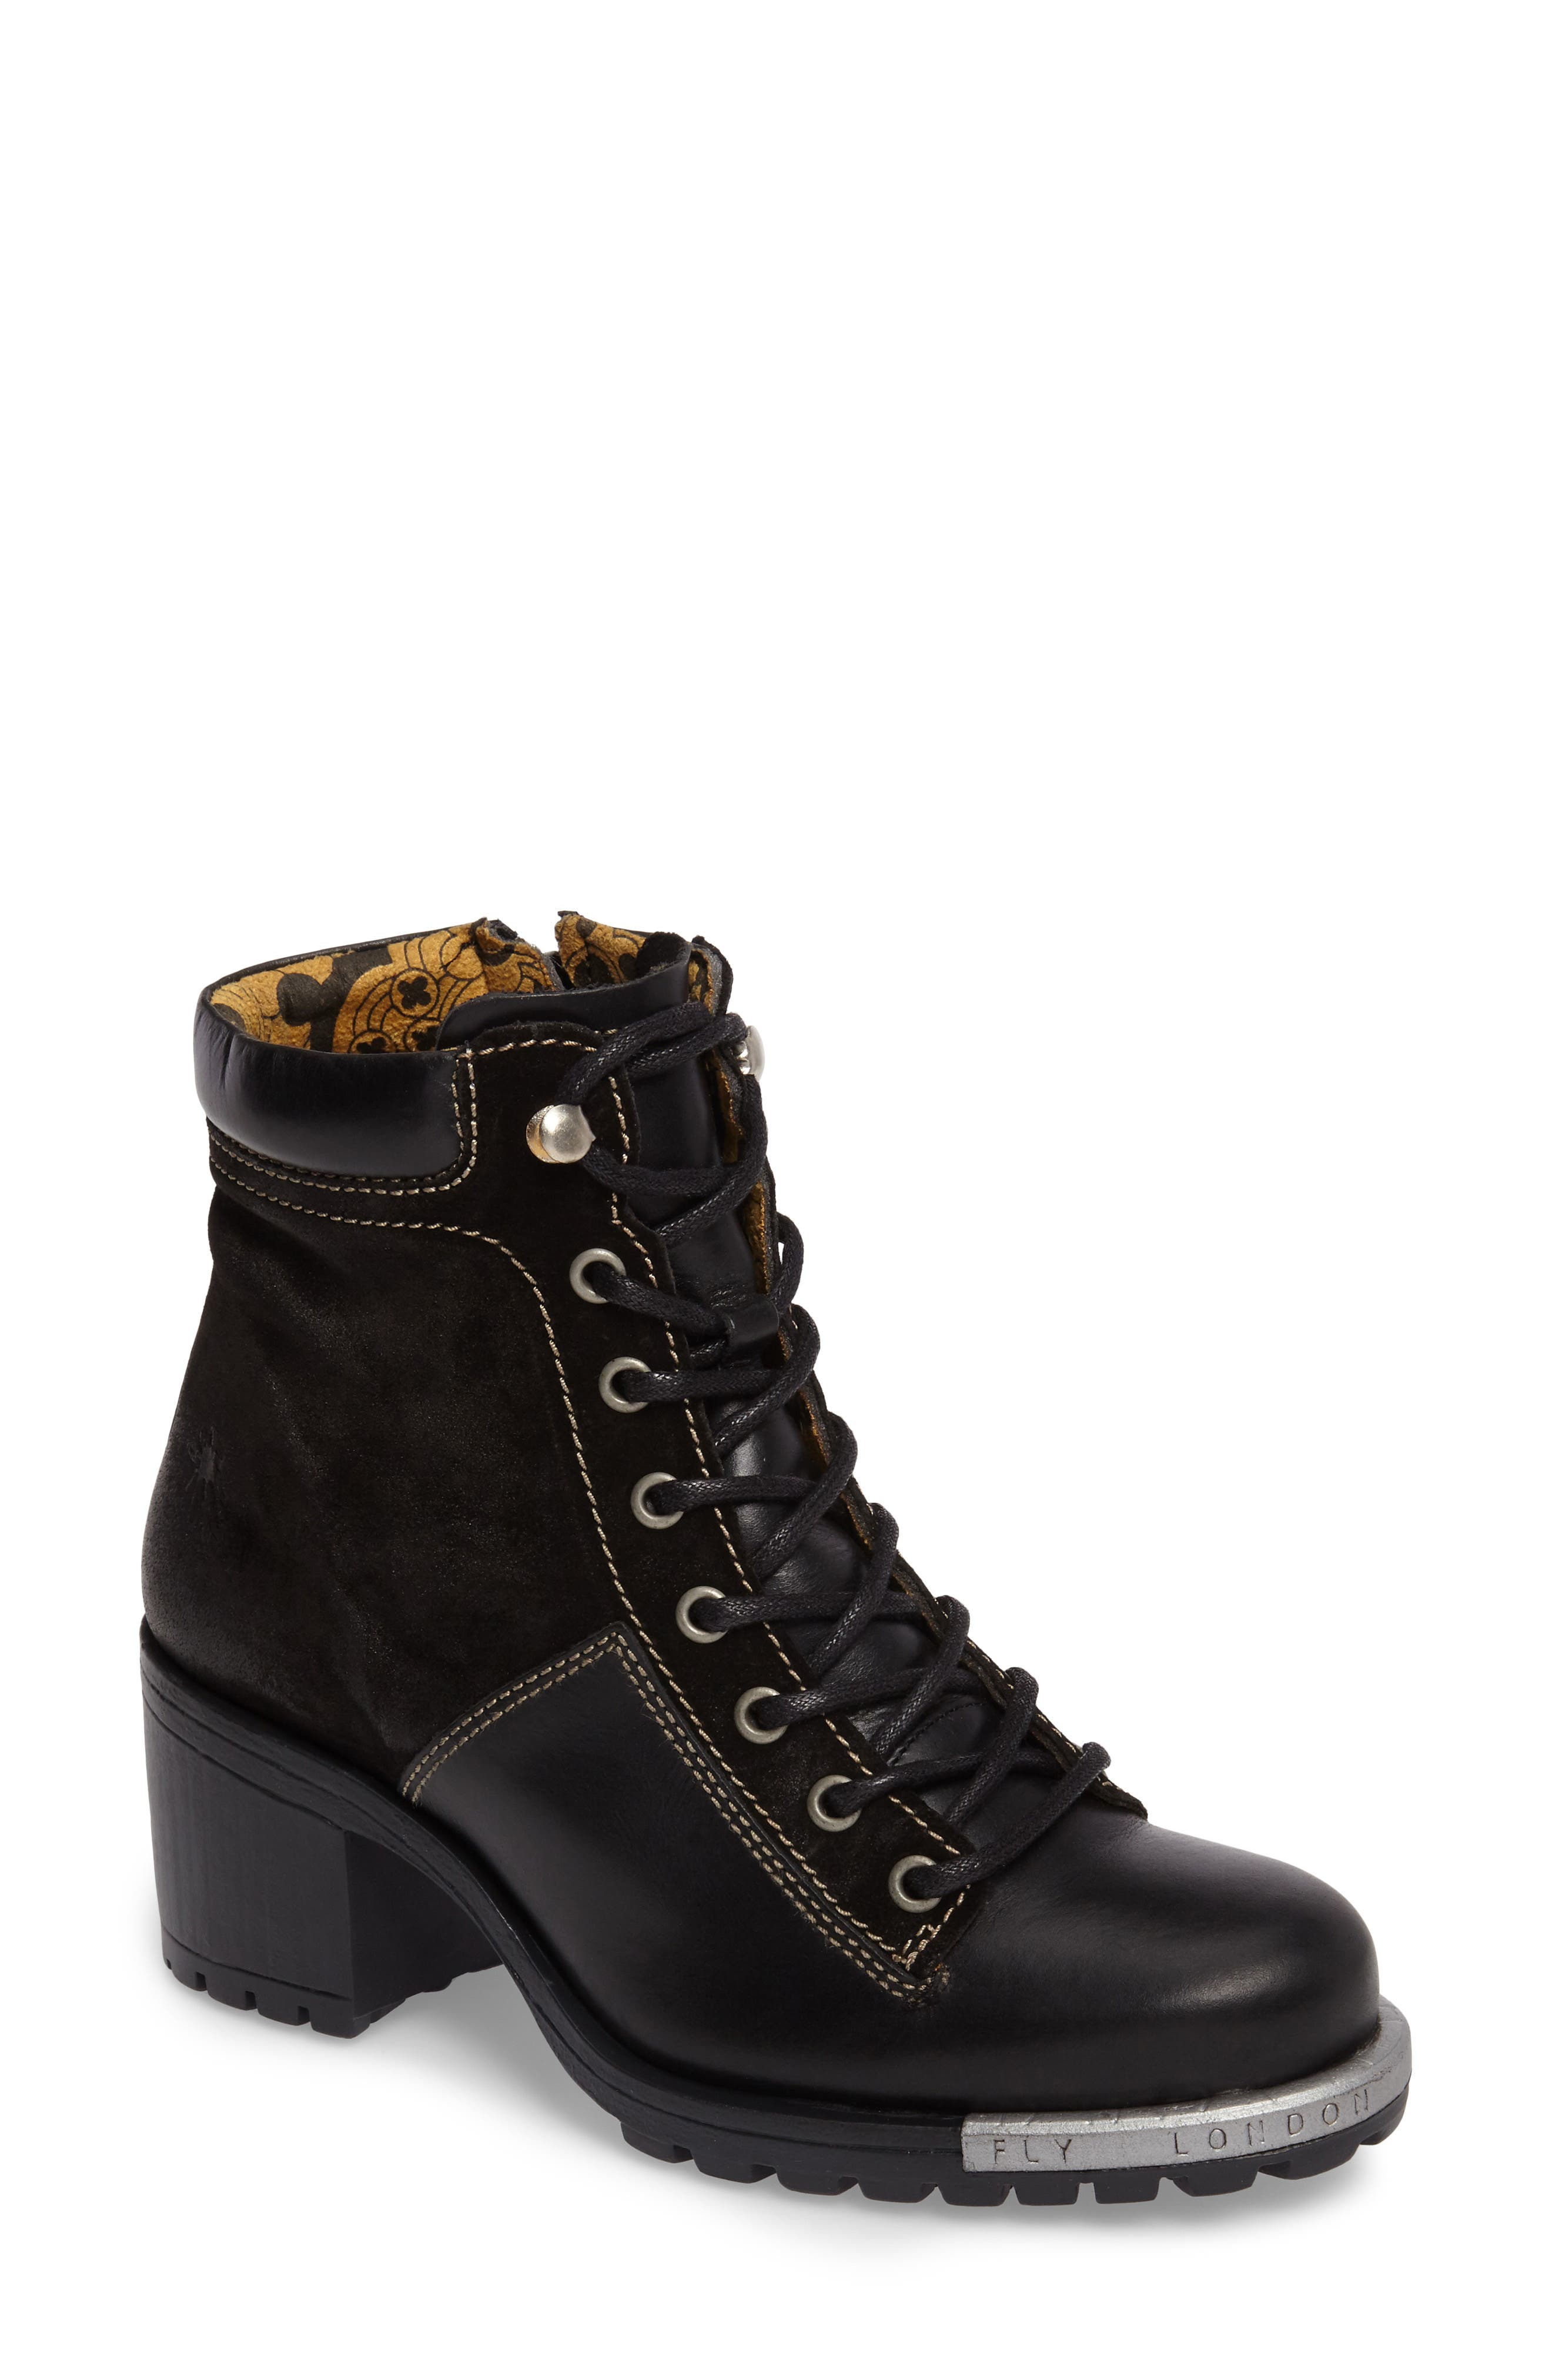 FLY LONDON 'Leal' Boot, Main, color, 005